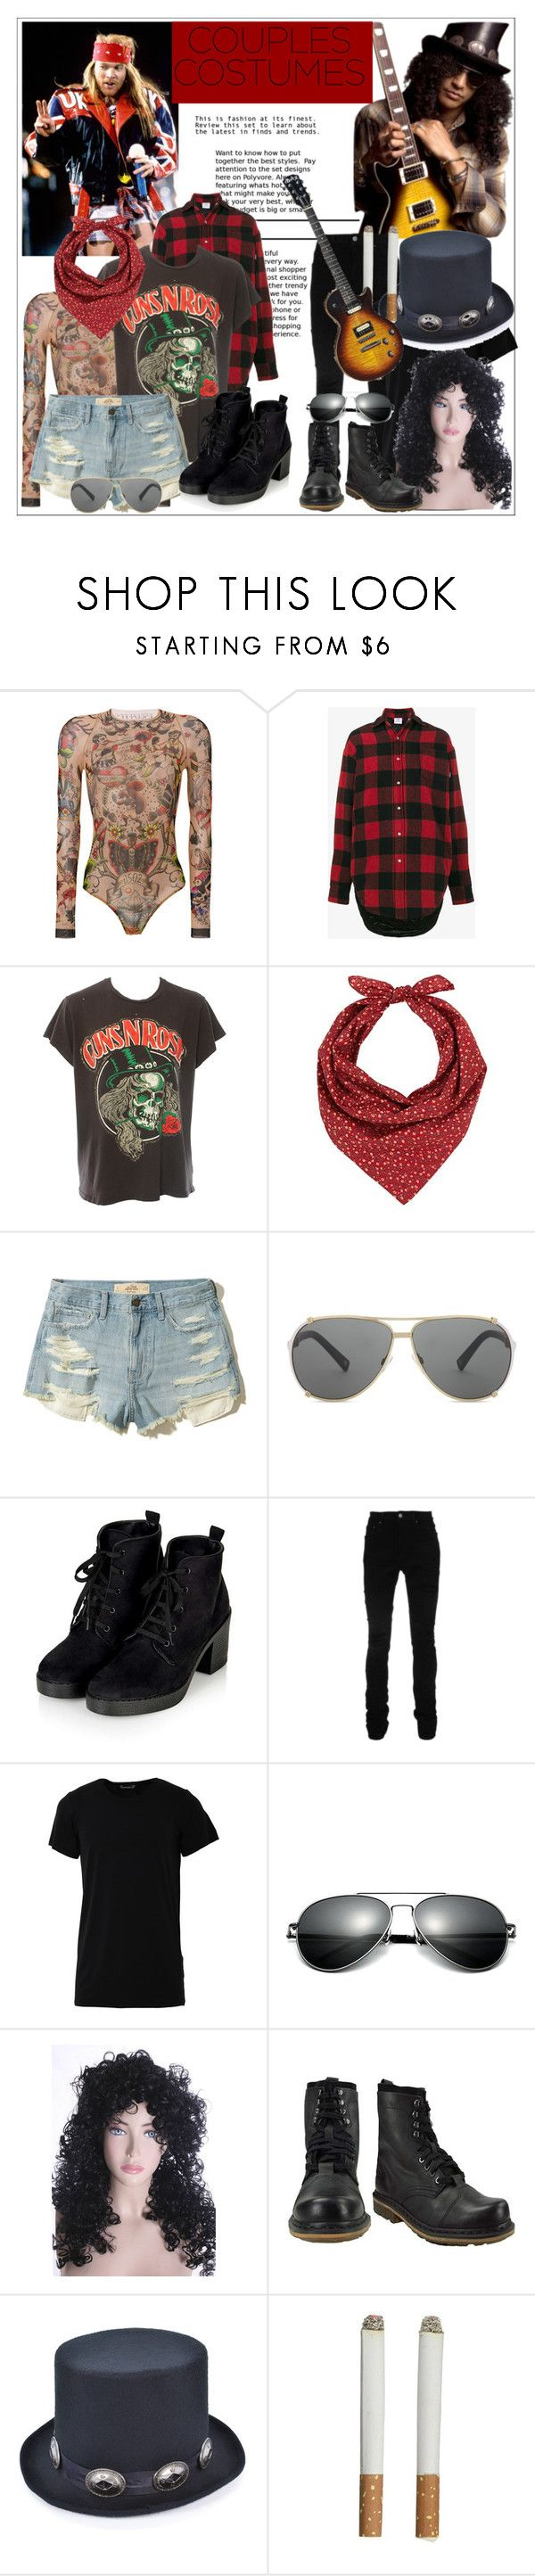 """""""Axl Rose & Slash Couples Costumes"""" by larinhacarter ❤ liked on Polyvore featuring Dsquared2, Vetements, MadeWorn, Barneys New York, Hollister Co., Christian Dior, AMIRI, Numero00, Dr. Martens and couplescostumes"""